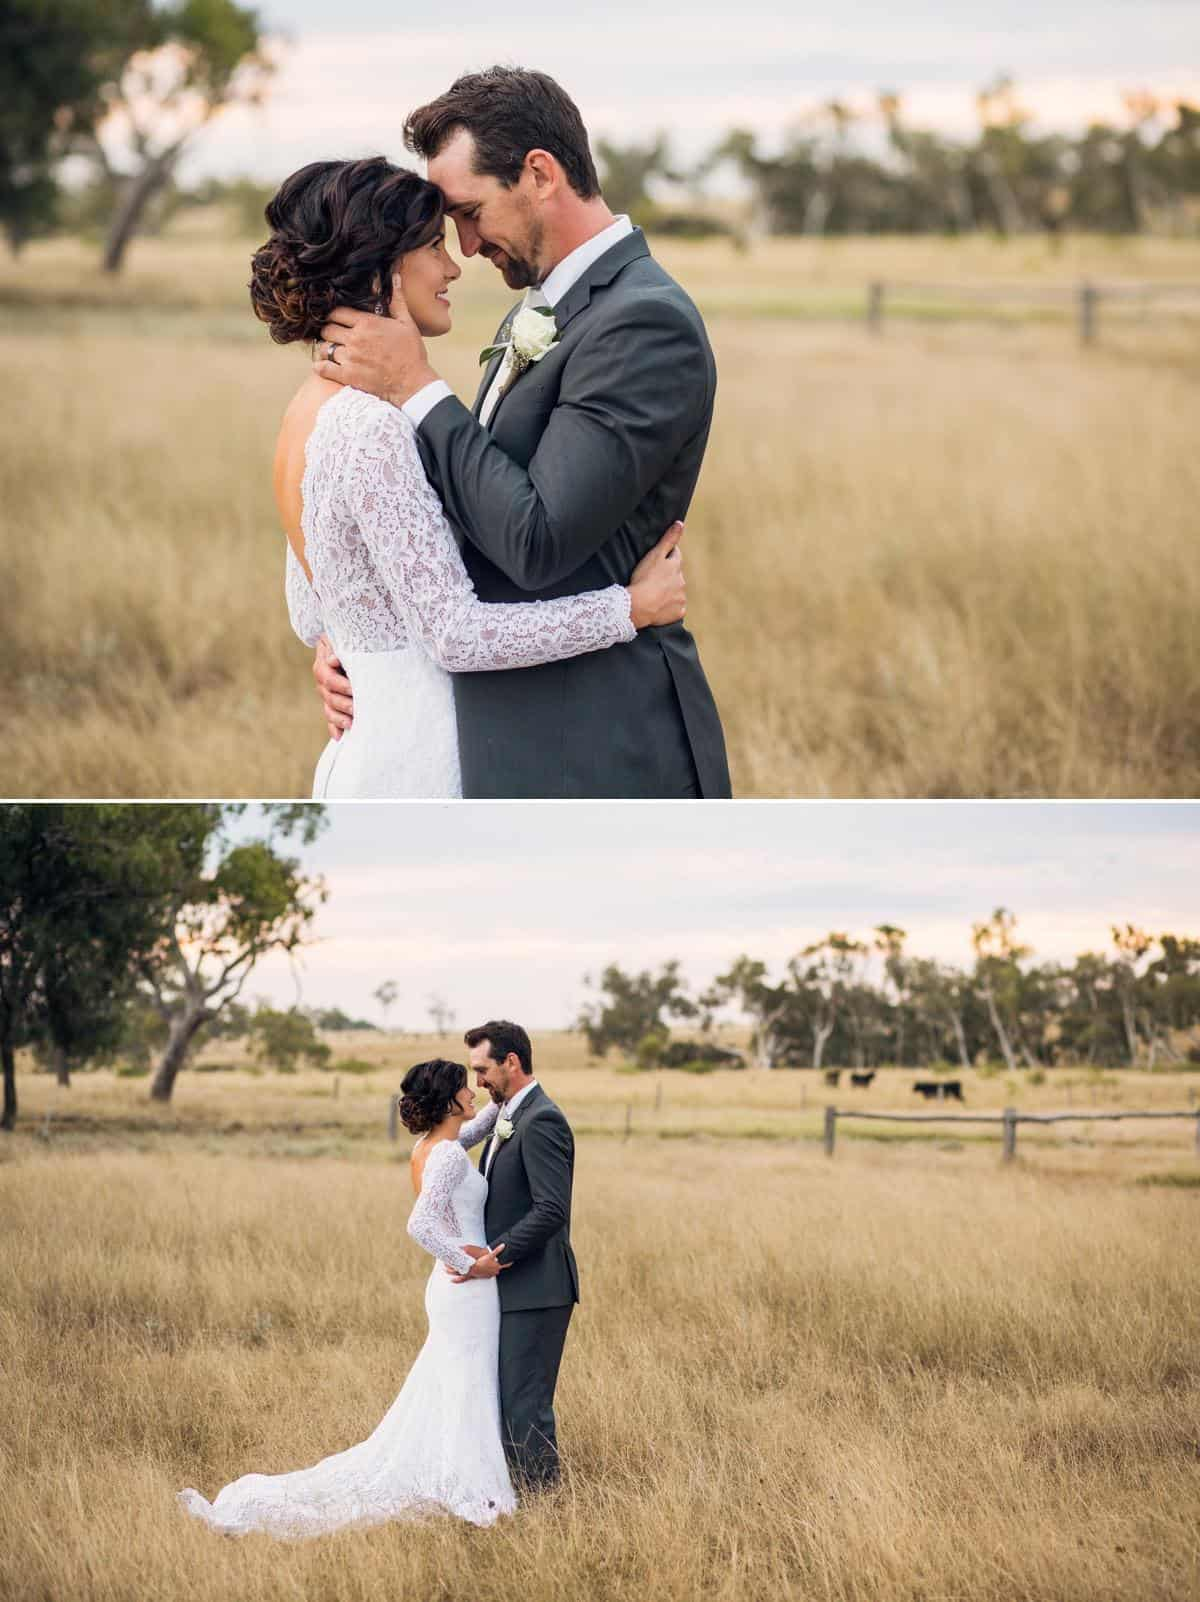 Kate + Brogan The Woolshed wedding www.benandhopeweddings.com.au 16